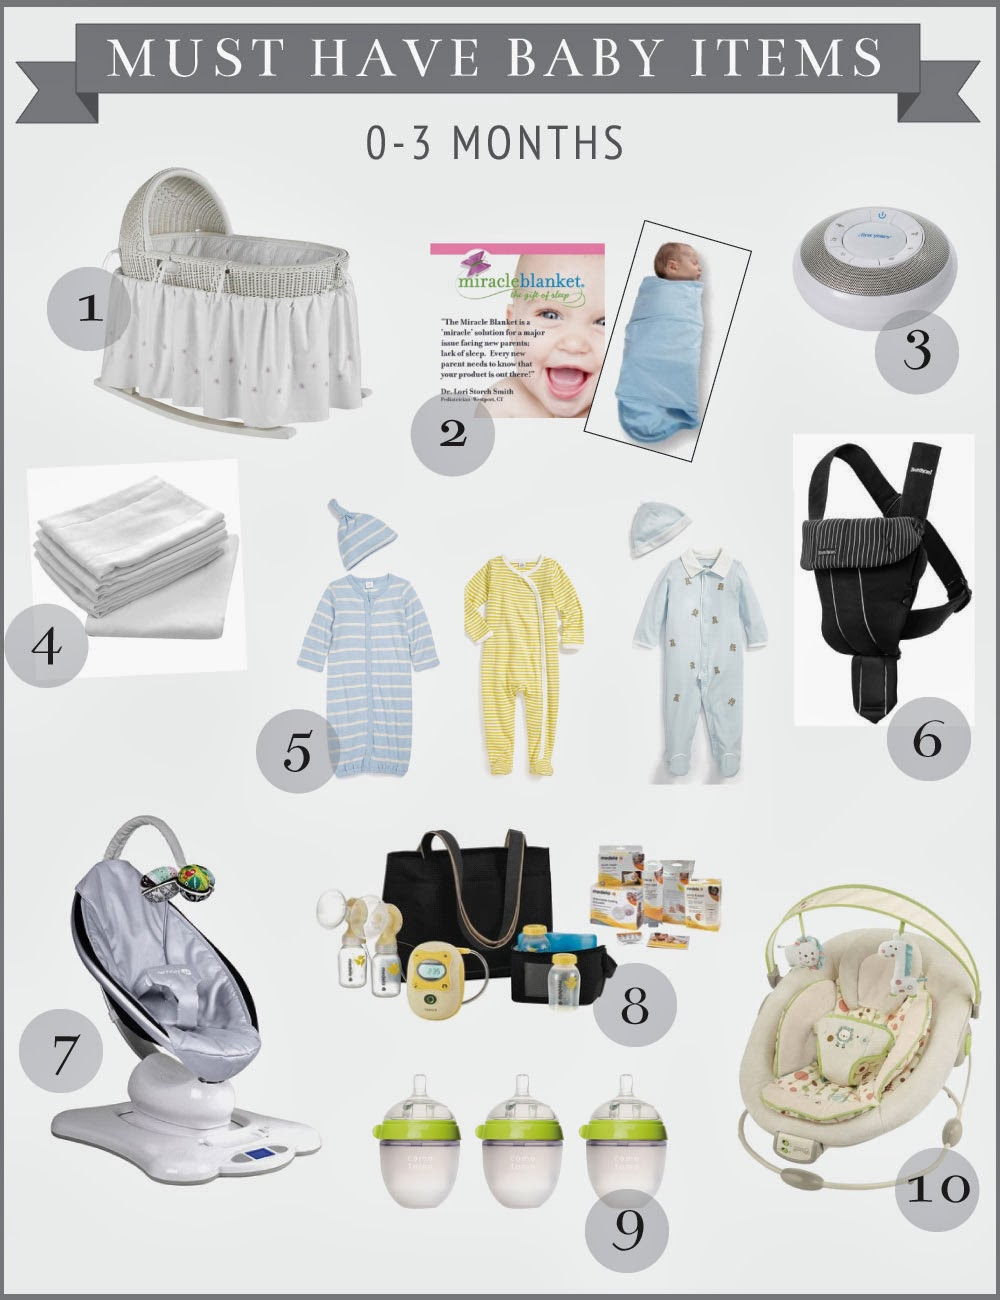 High Street Market My Picks For Must Have Baby Items 0